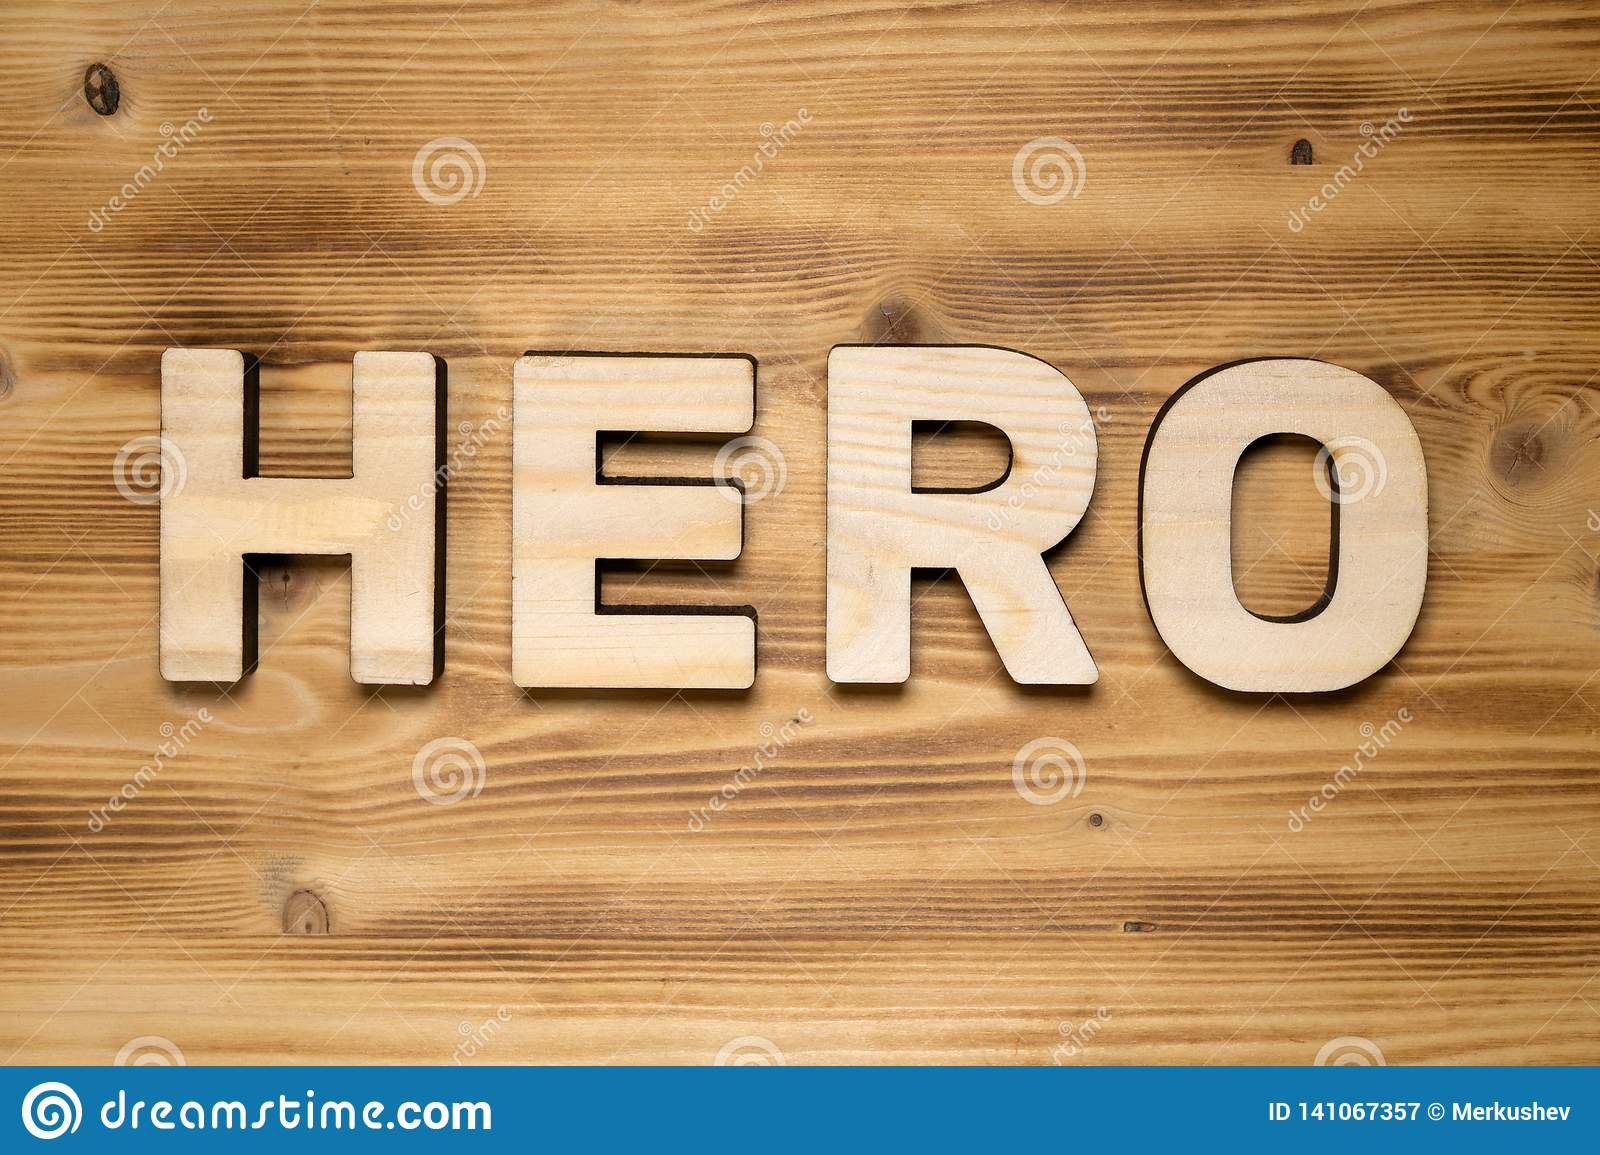 Image result for hero word